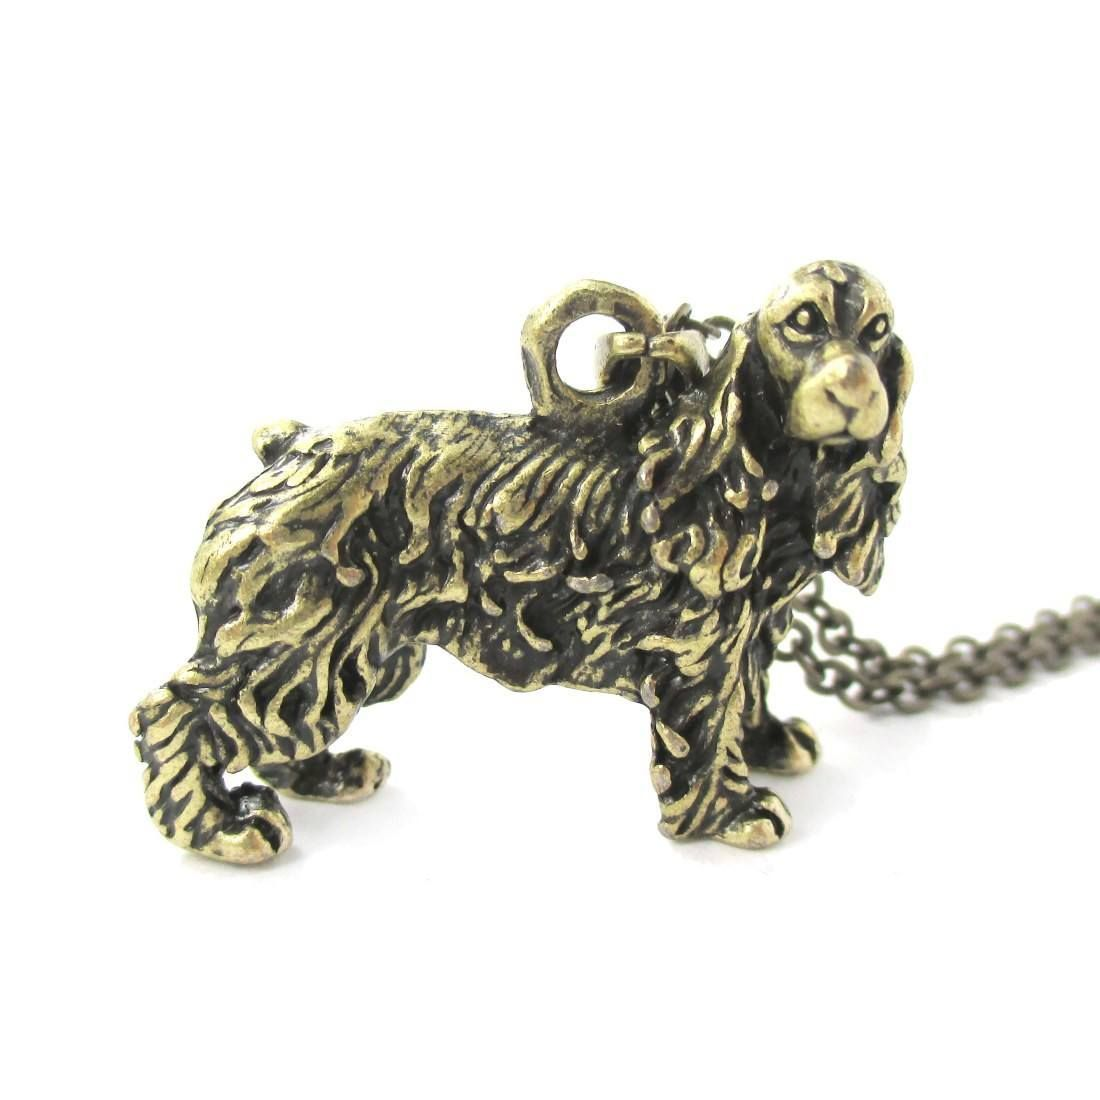 Realistic English Cocker Spaniel Shaped Animal Pendant Necklace in Brass | Jewelry for Dog Lovers